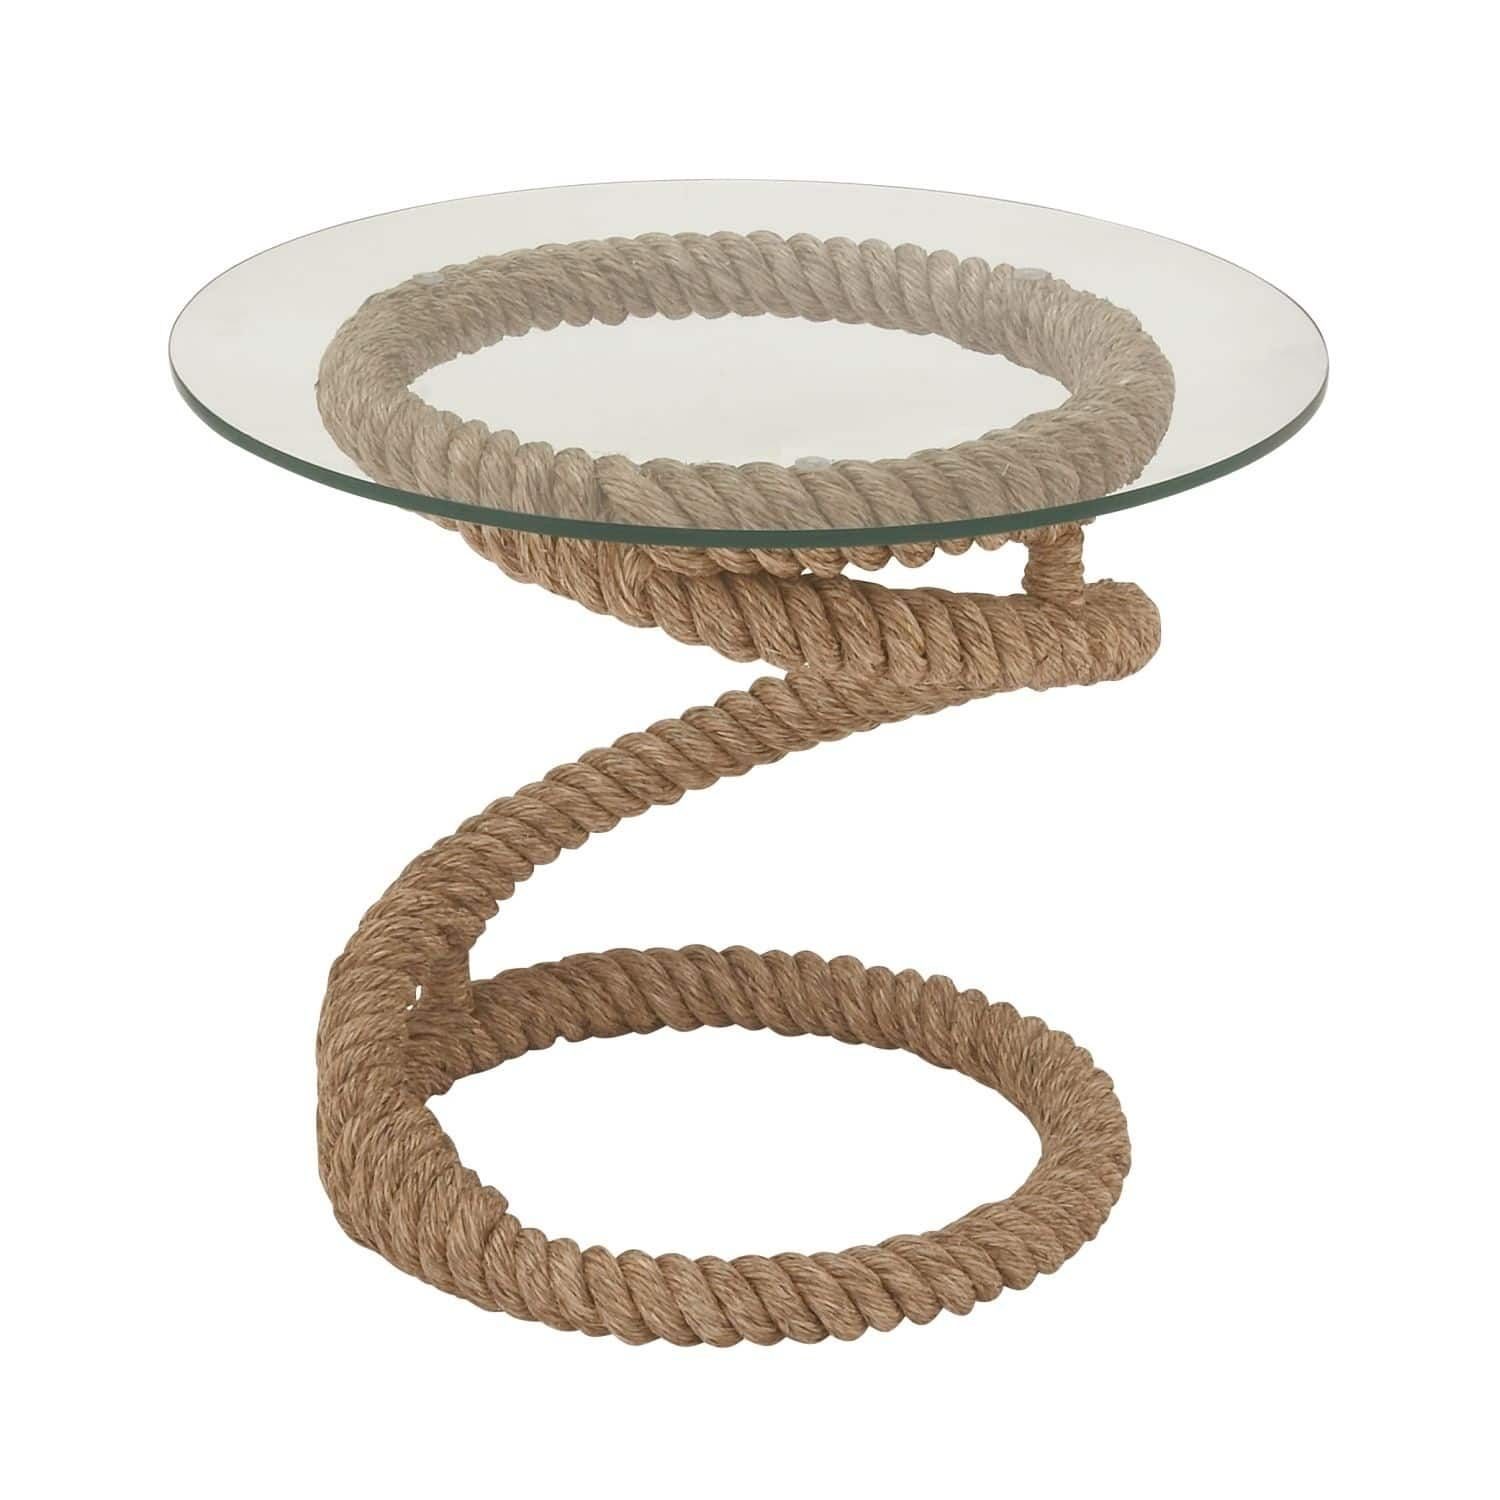 studio metal rope helix end table inches wide high bedford jute accent black and silver rug crystal bedside lamps clearance tables seagrass coffee target cocktail piece dining set